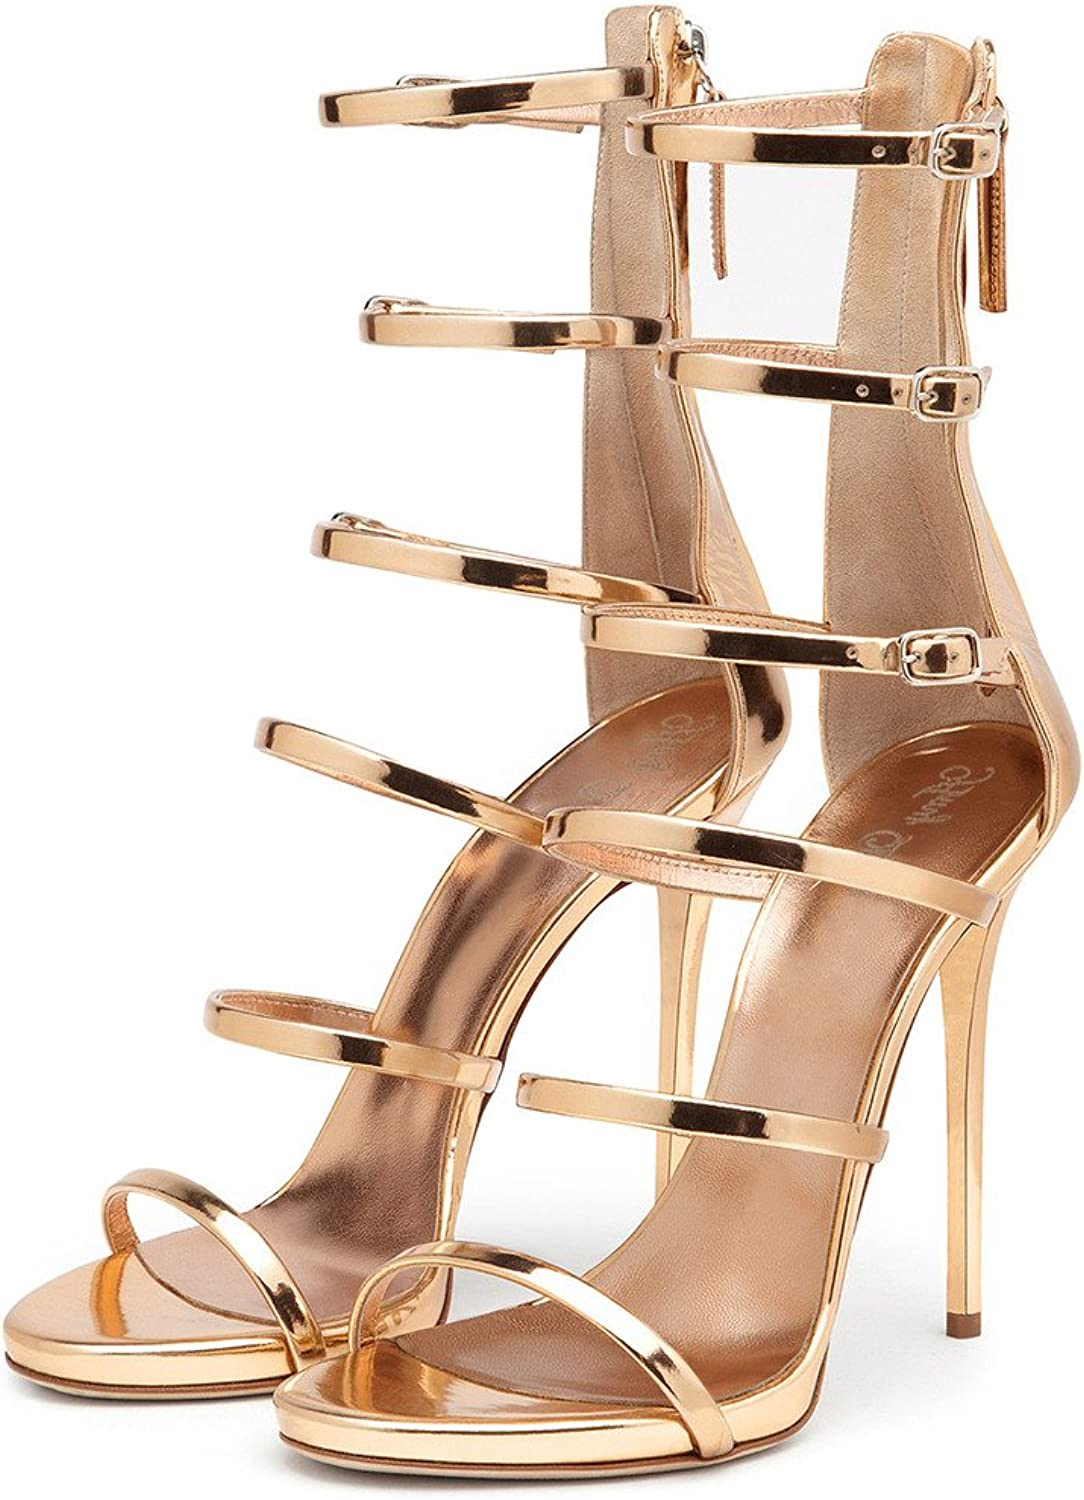 Amy Q Women Open Toe Buckle Ankle Strap High Heels Gladiator Sandals Boots Casual shoes